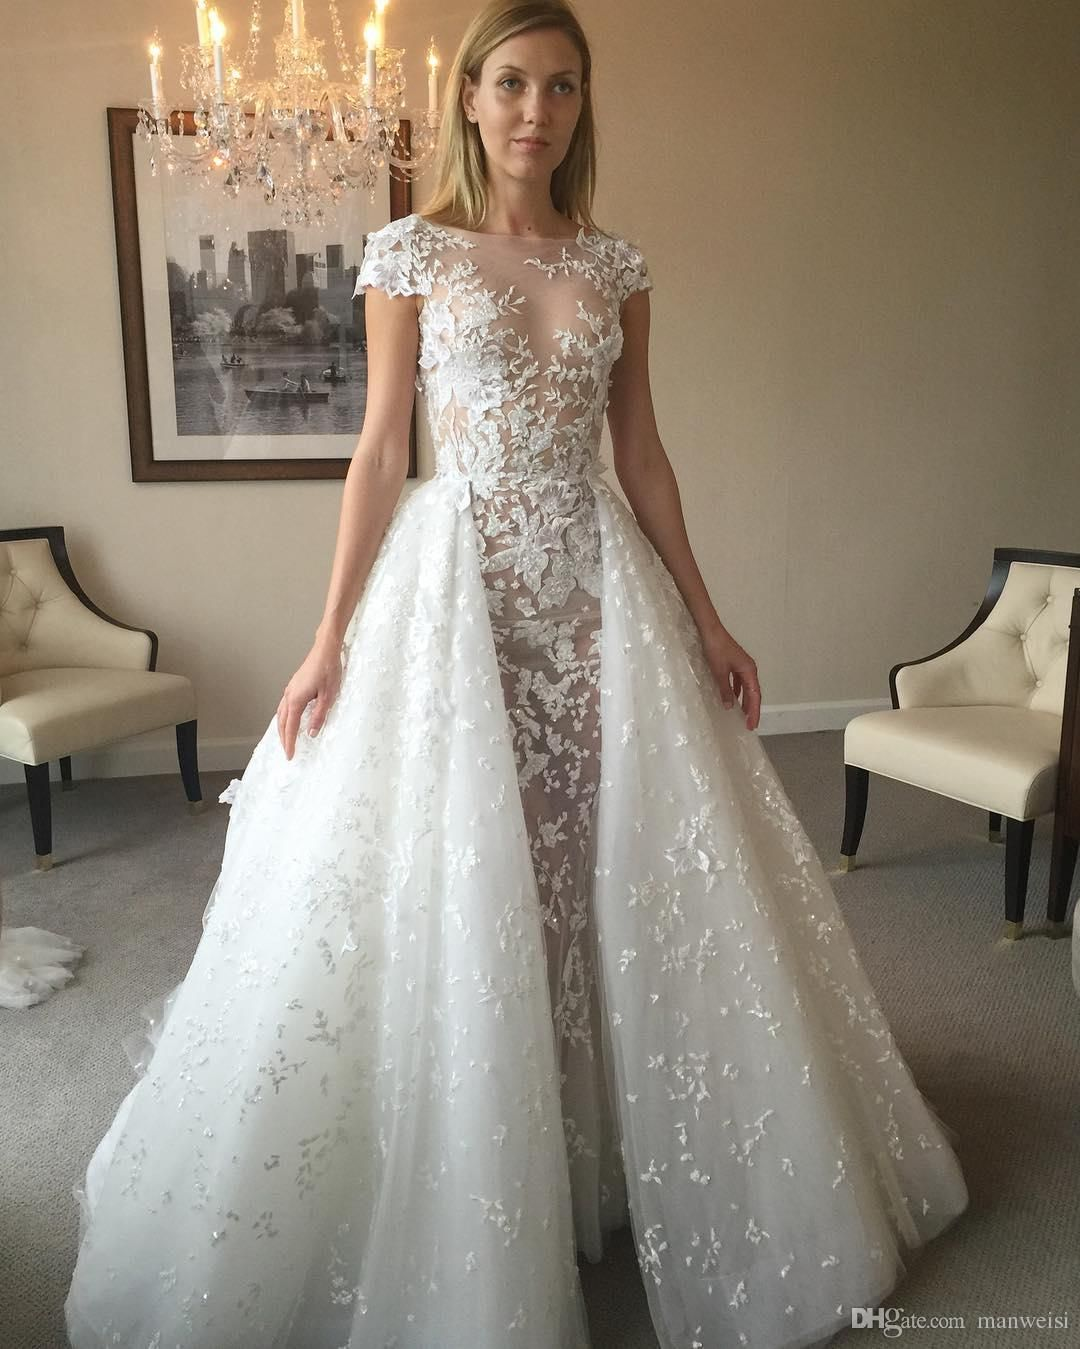 2017 Zuhair Murad Backless Mermaid Wedding Dresses With Detachable Train Lace Br Wedding Dresses Zuhair Murad Backless Mermaid Wedding Dresses Lace Bridal Gown [ 1349 x 1080 Pixel ]